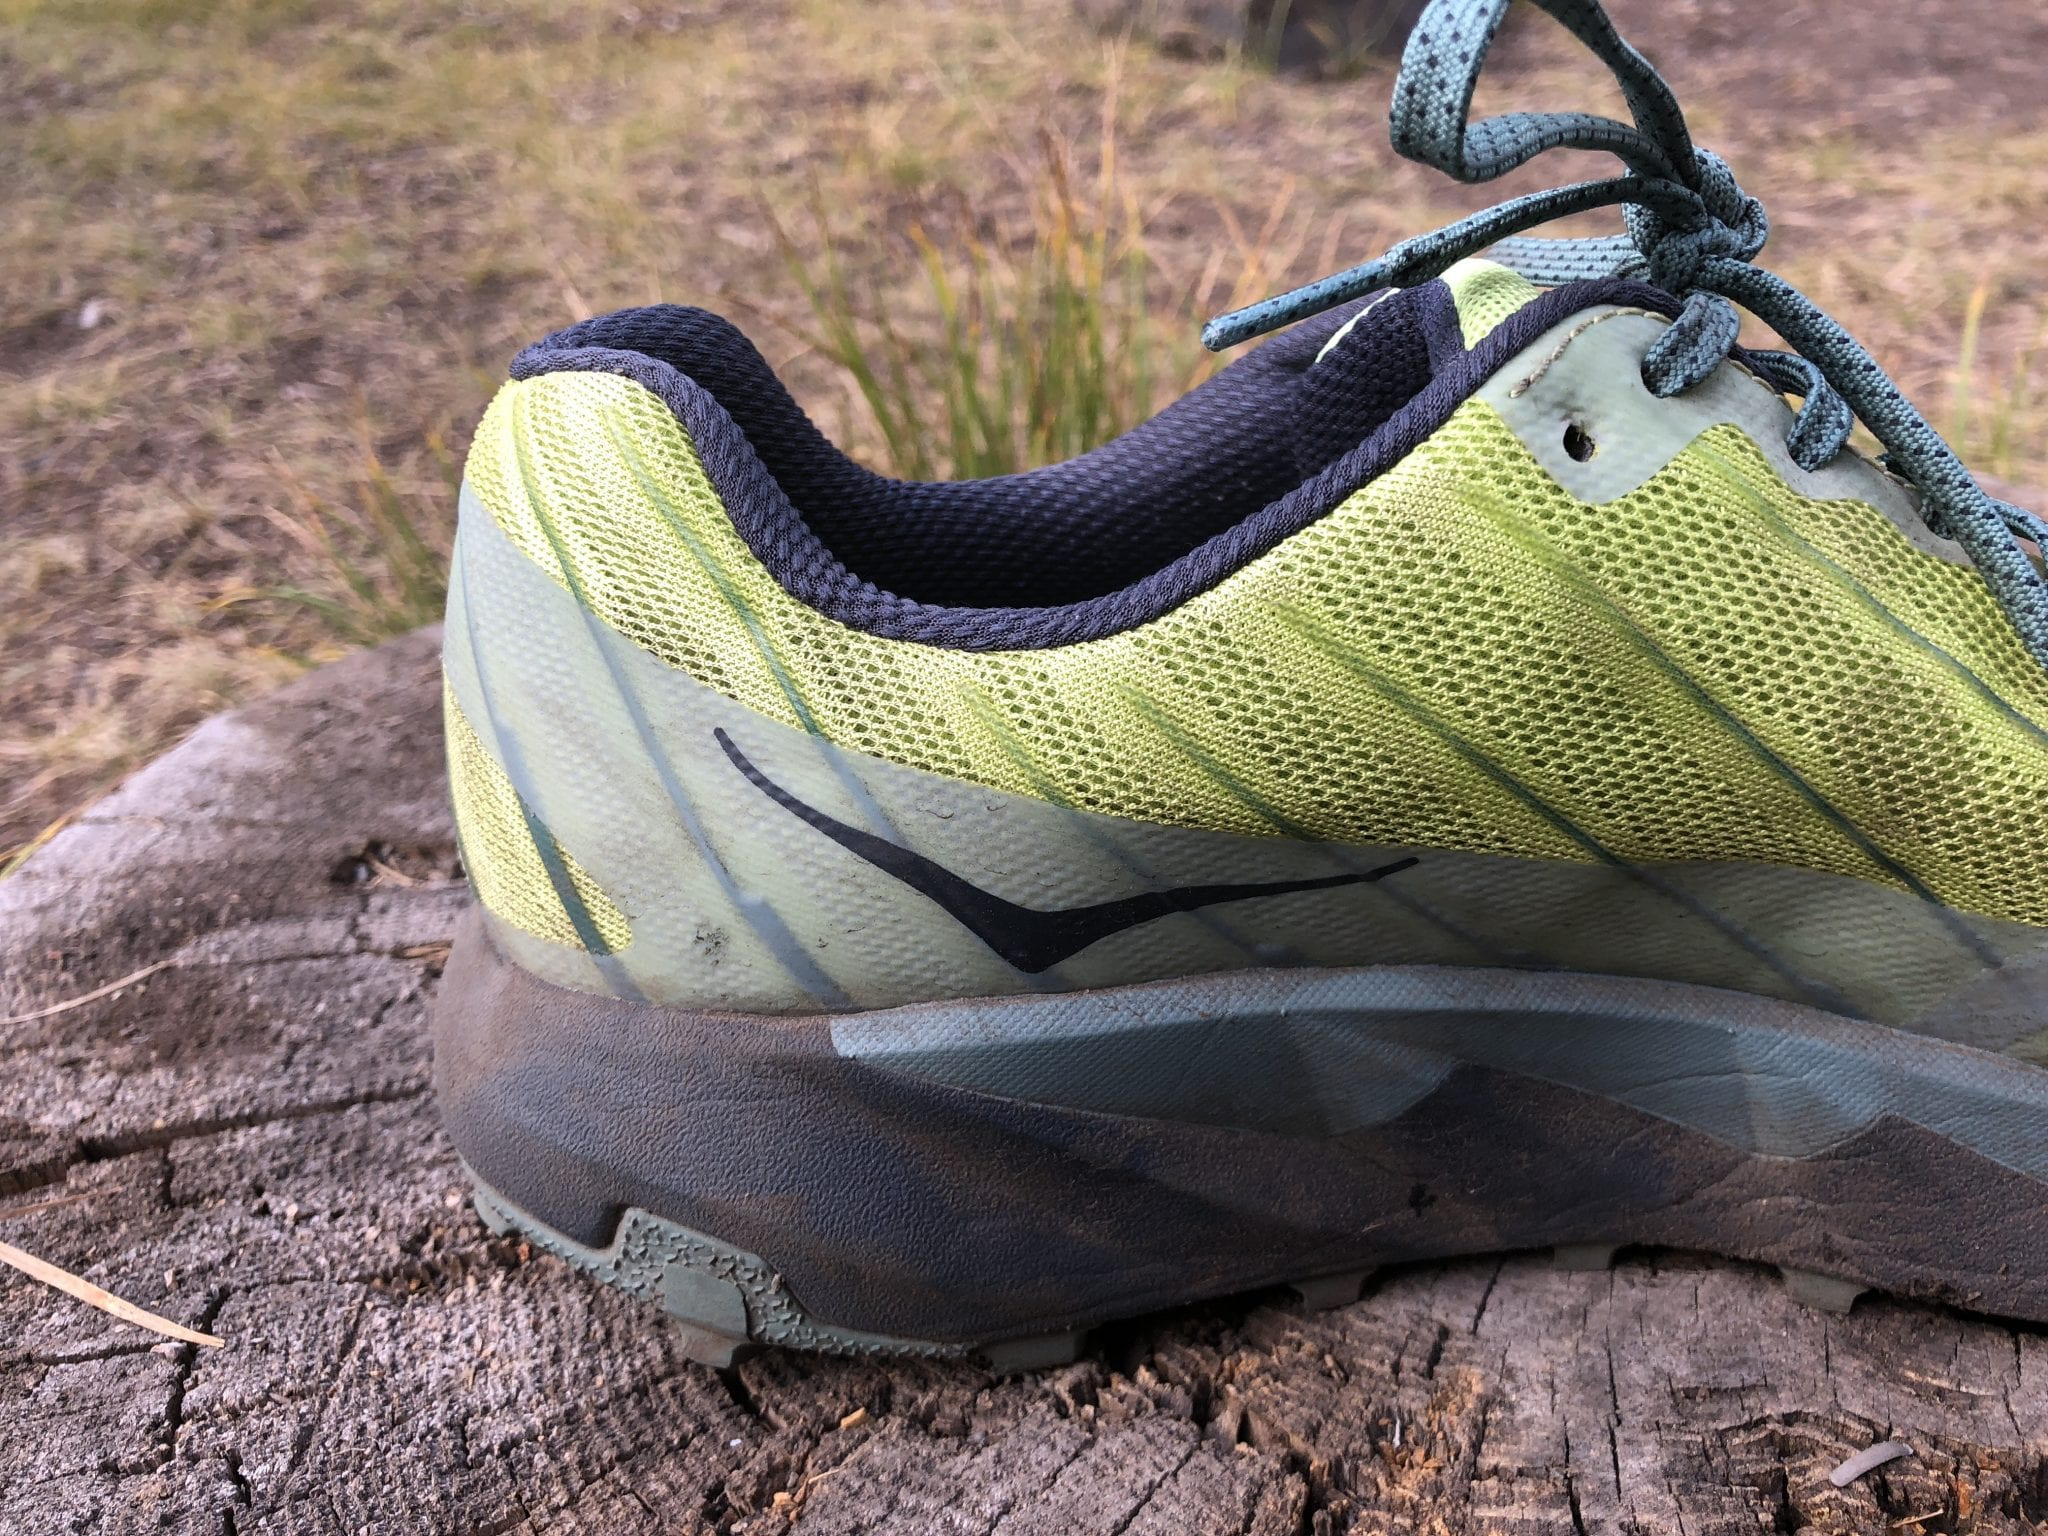 HokaOneOne Torrent 11